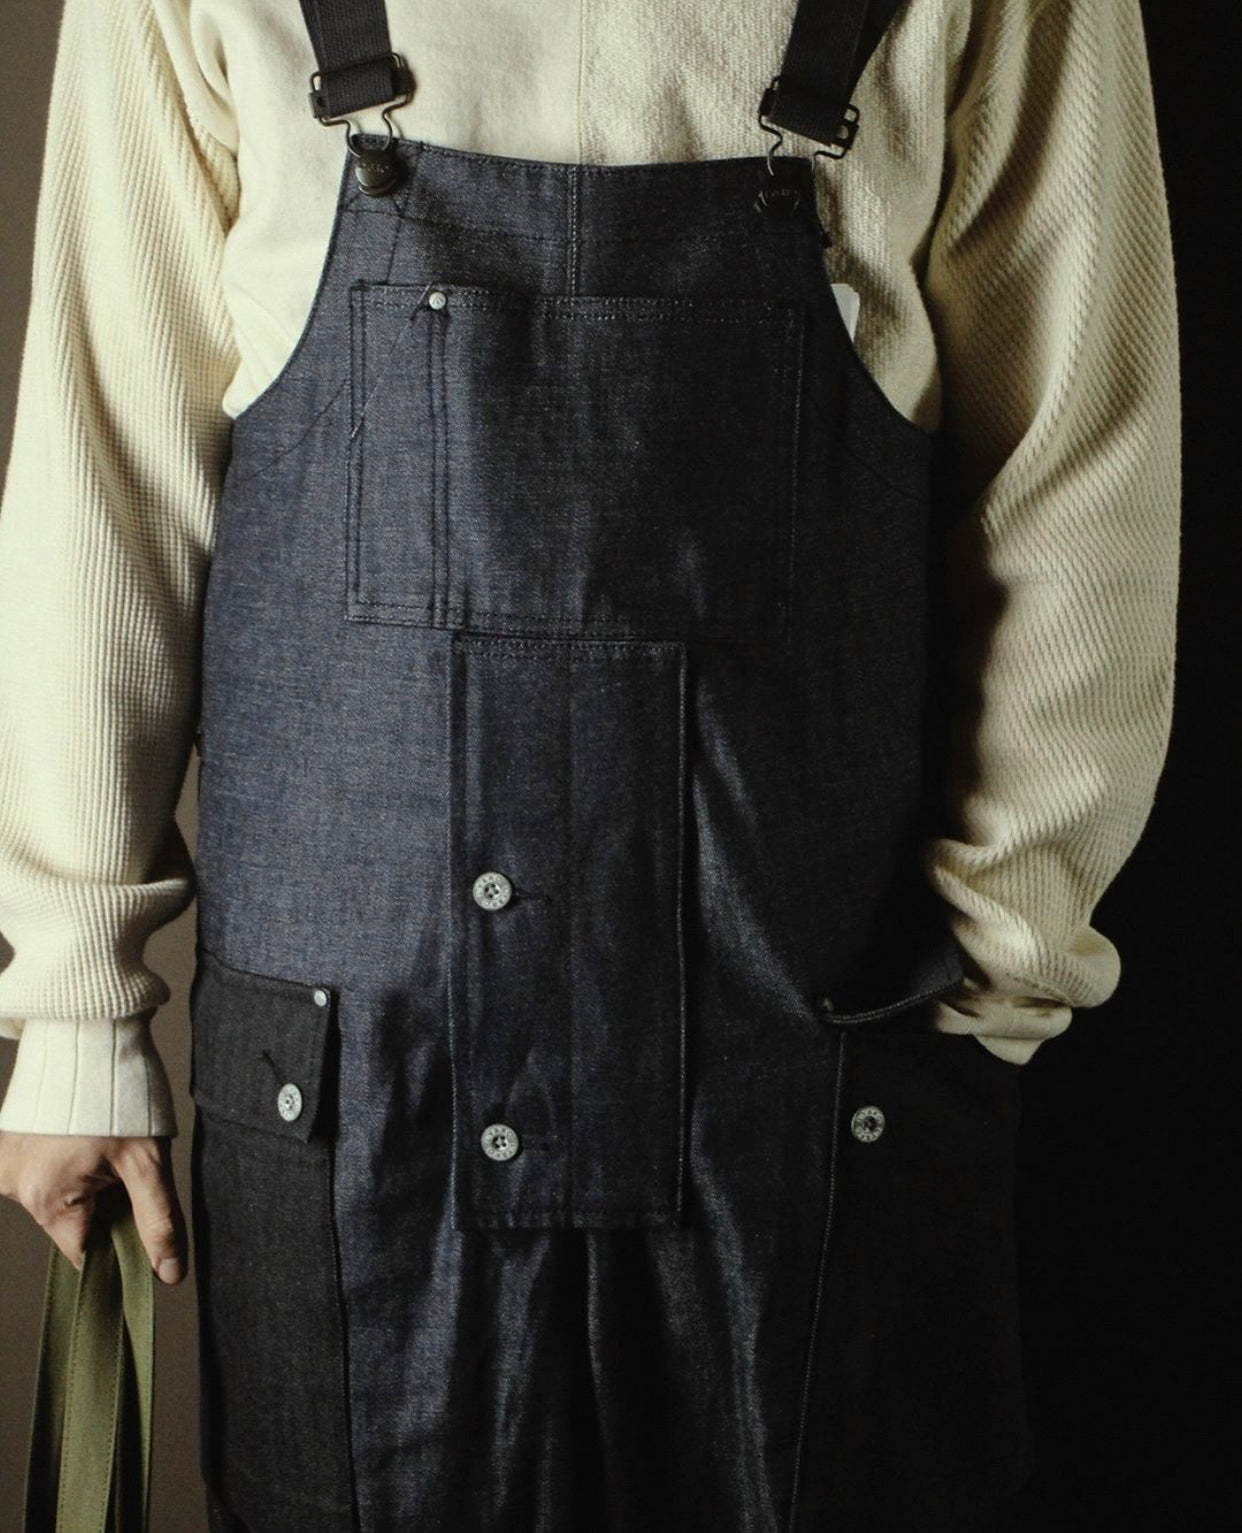 Naval Dungaree HB Denim, Nigel Cabourn - The Signet Store